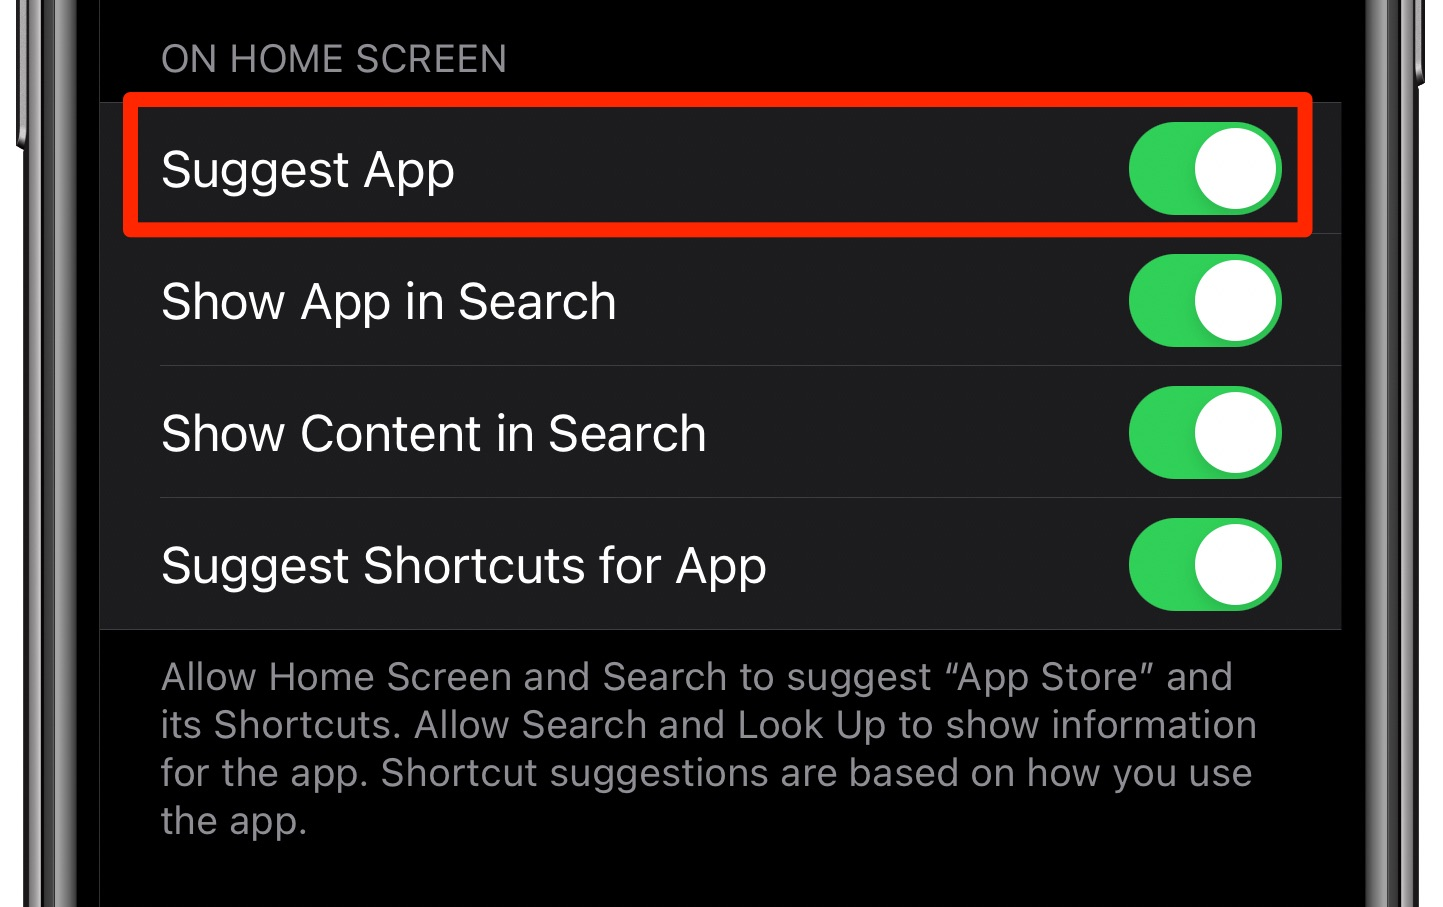 Siri Suggestions widget - enabling the Suggest App option for App Store in Siri & Search settings